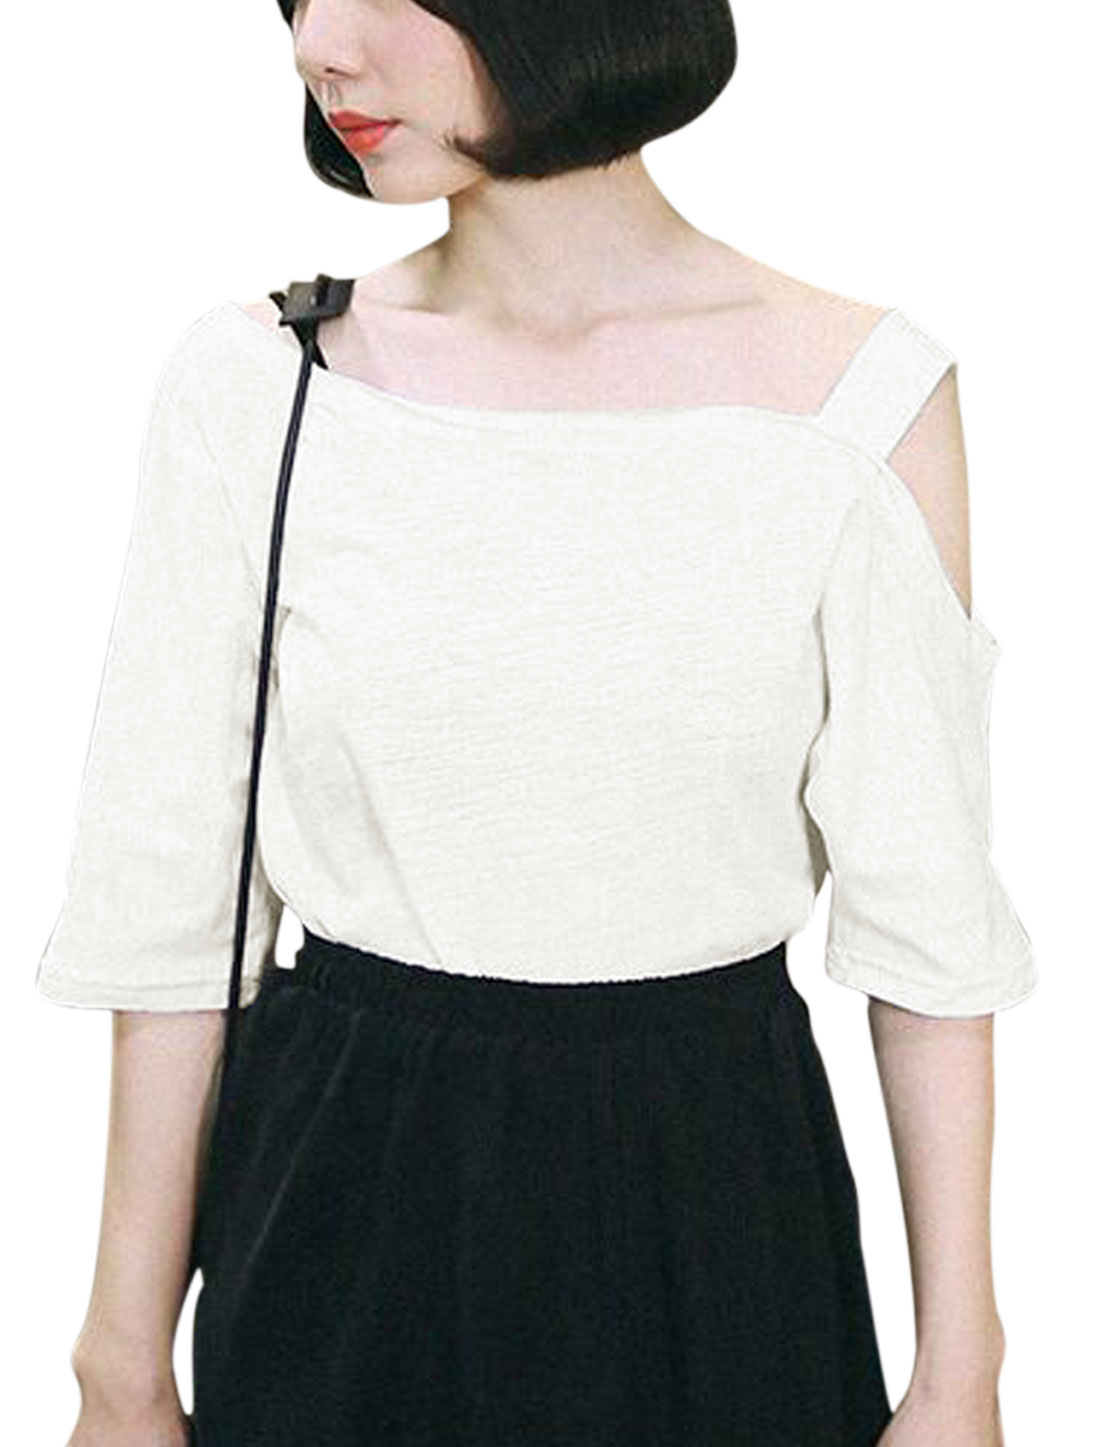 Women One Cut Out Shoulder Elbow Sleeves Asymmetric Neck Casual Tee White M